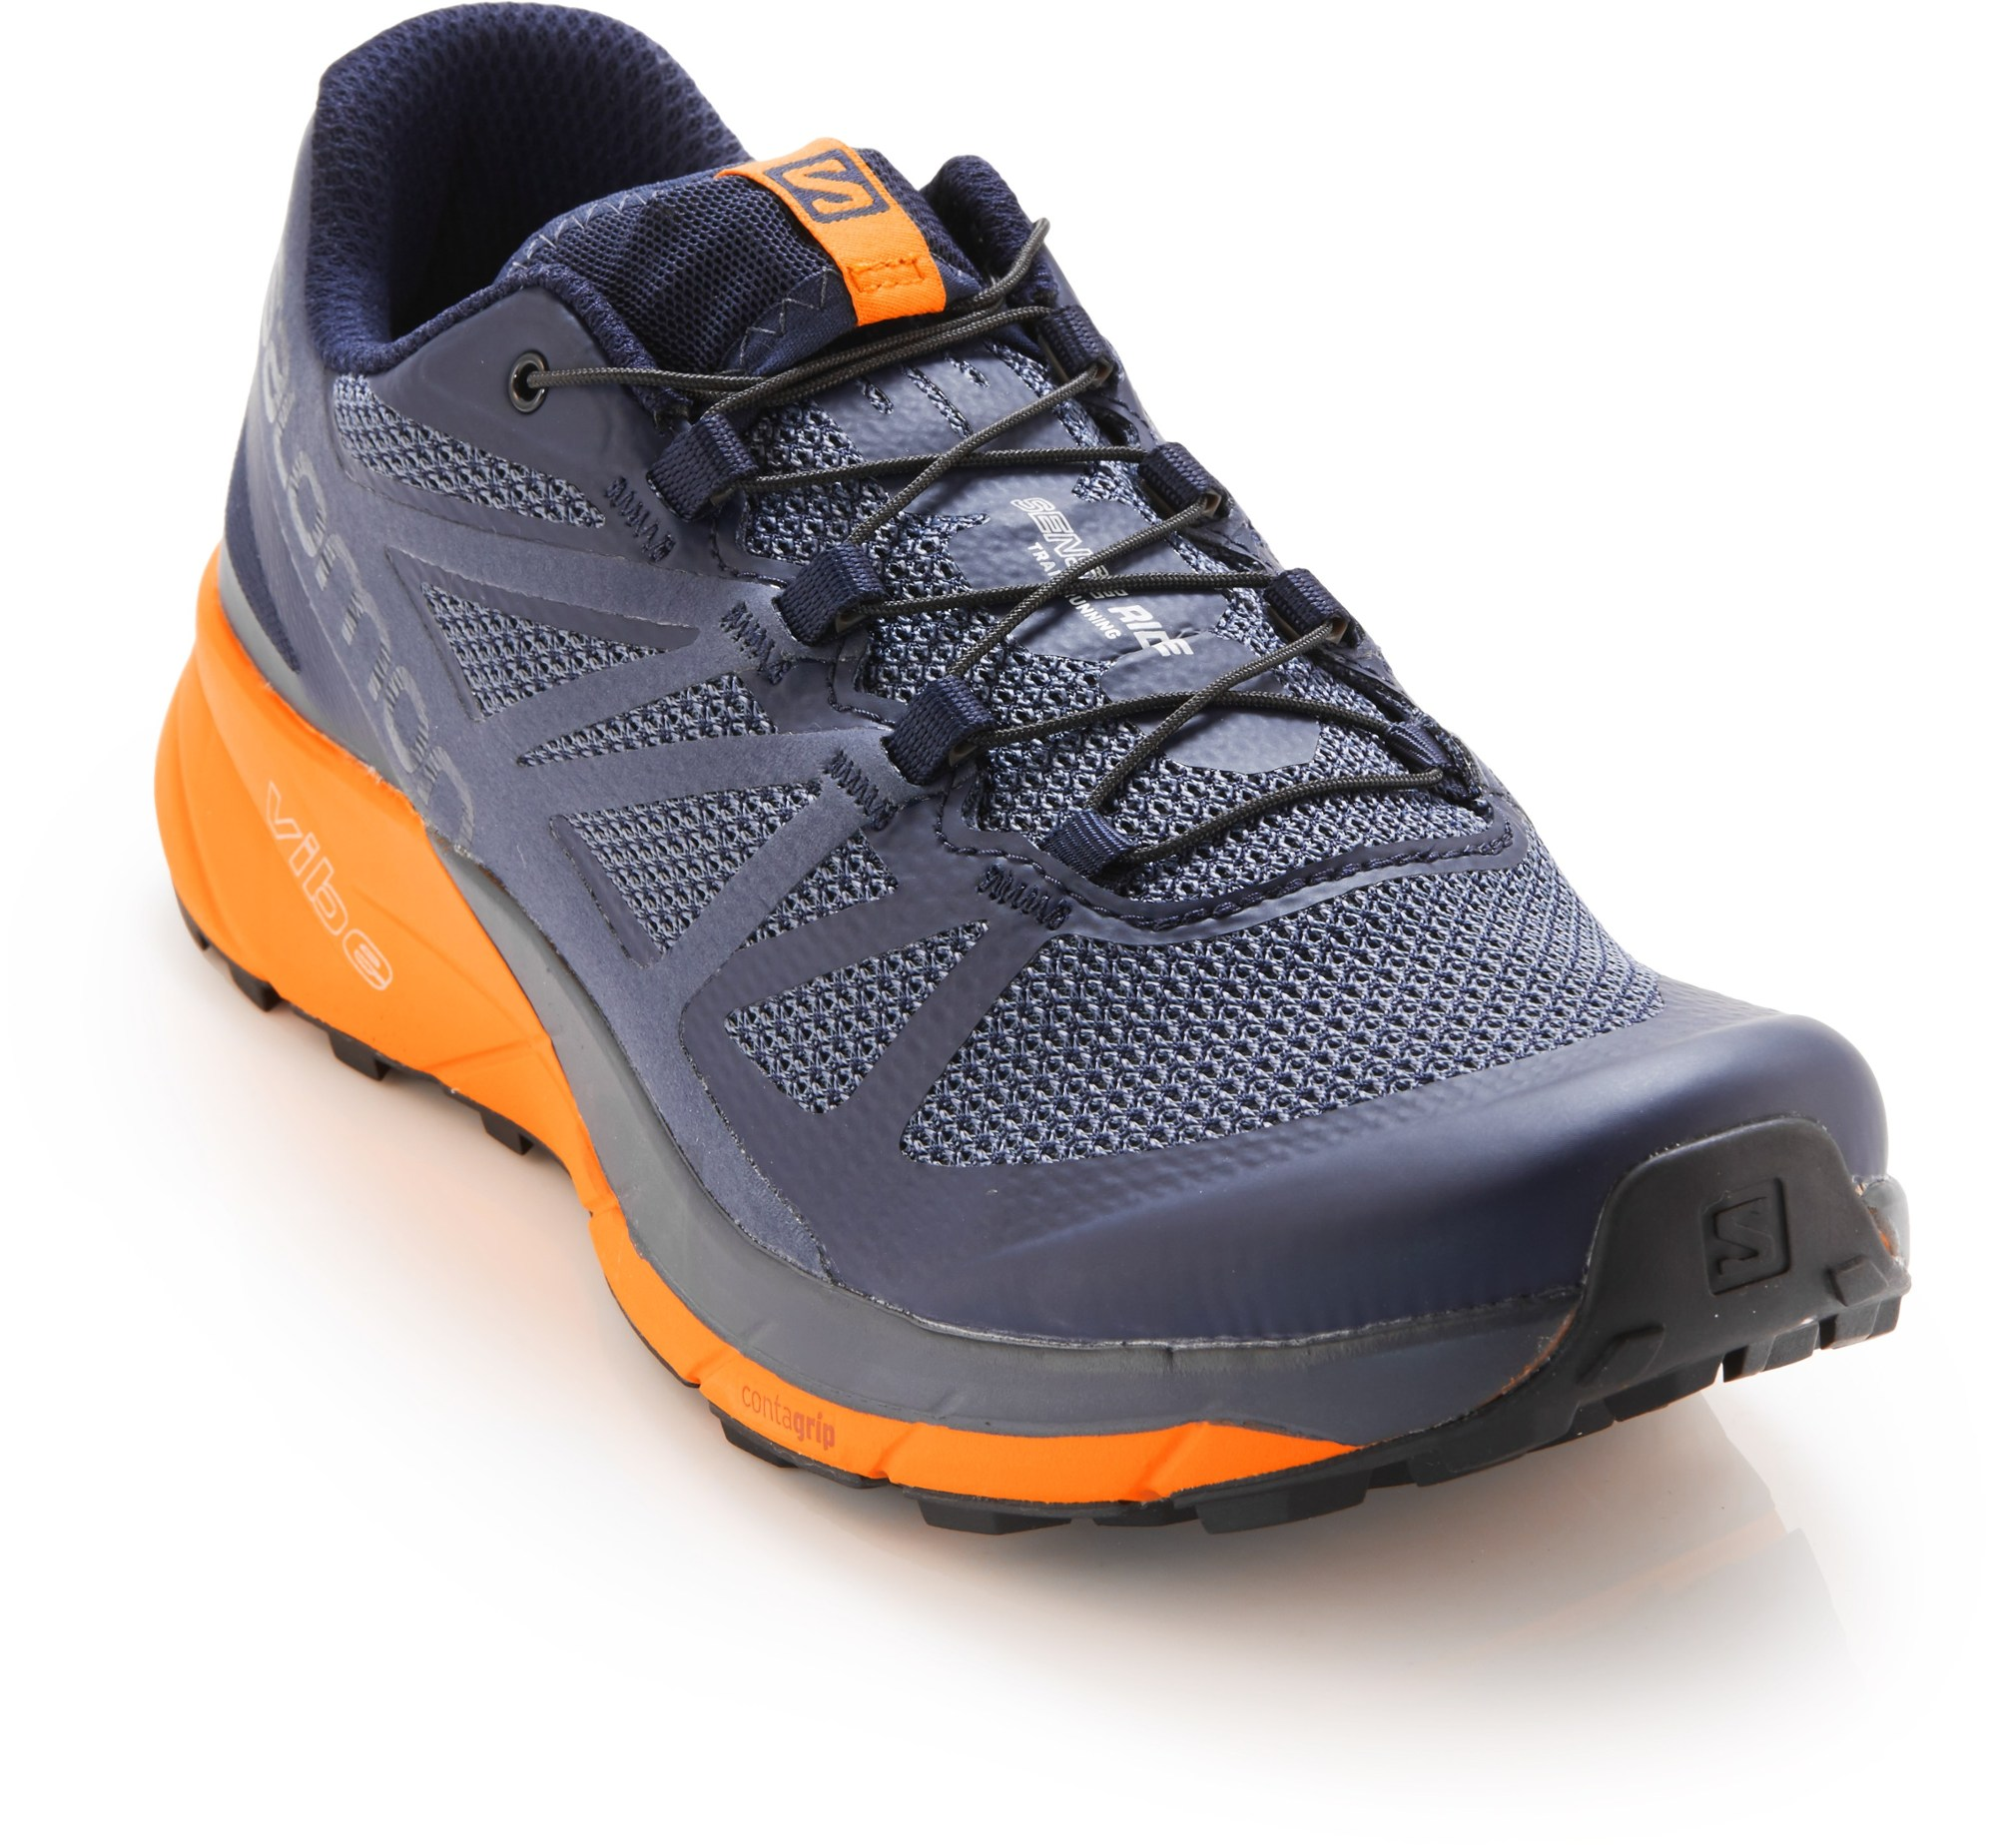 Salomon Sense Ride Trail-Running Shoes - Men's